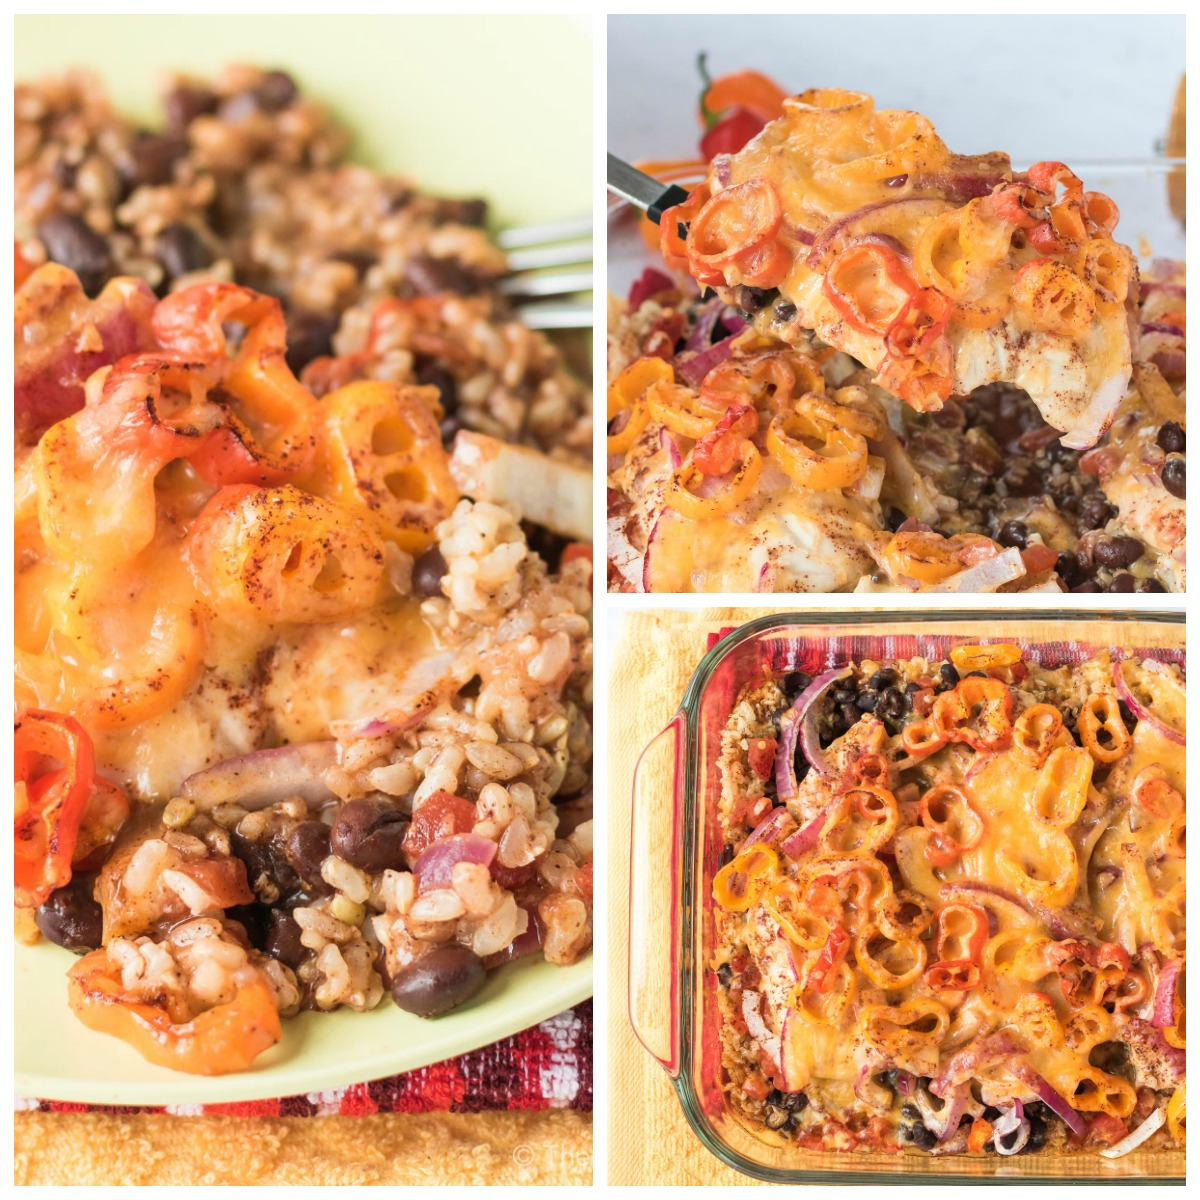 This very easy layered Southwest Chicken Casserole is an easy way to get the flavor or chicken fajitas with black beans and rice all in one pan!